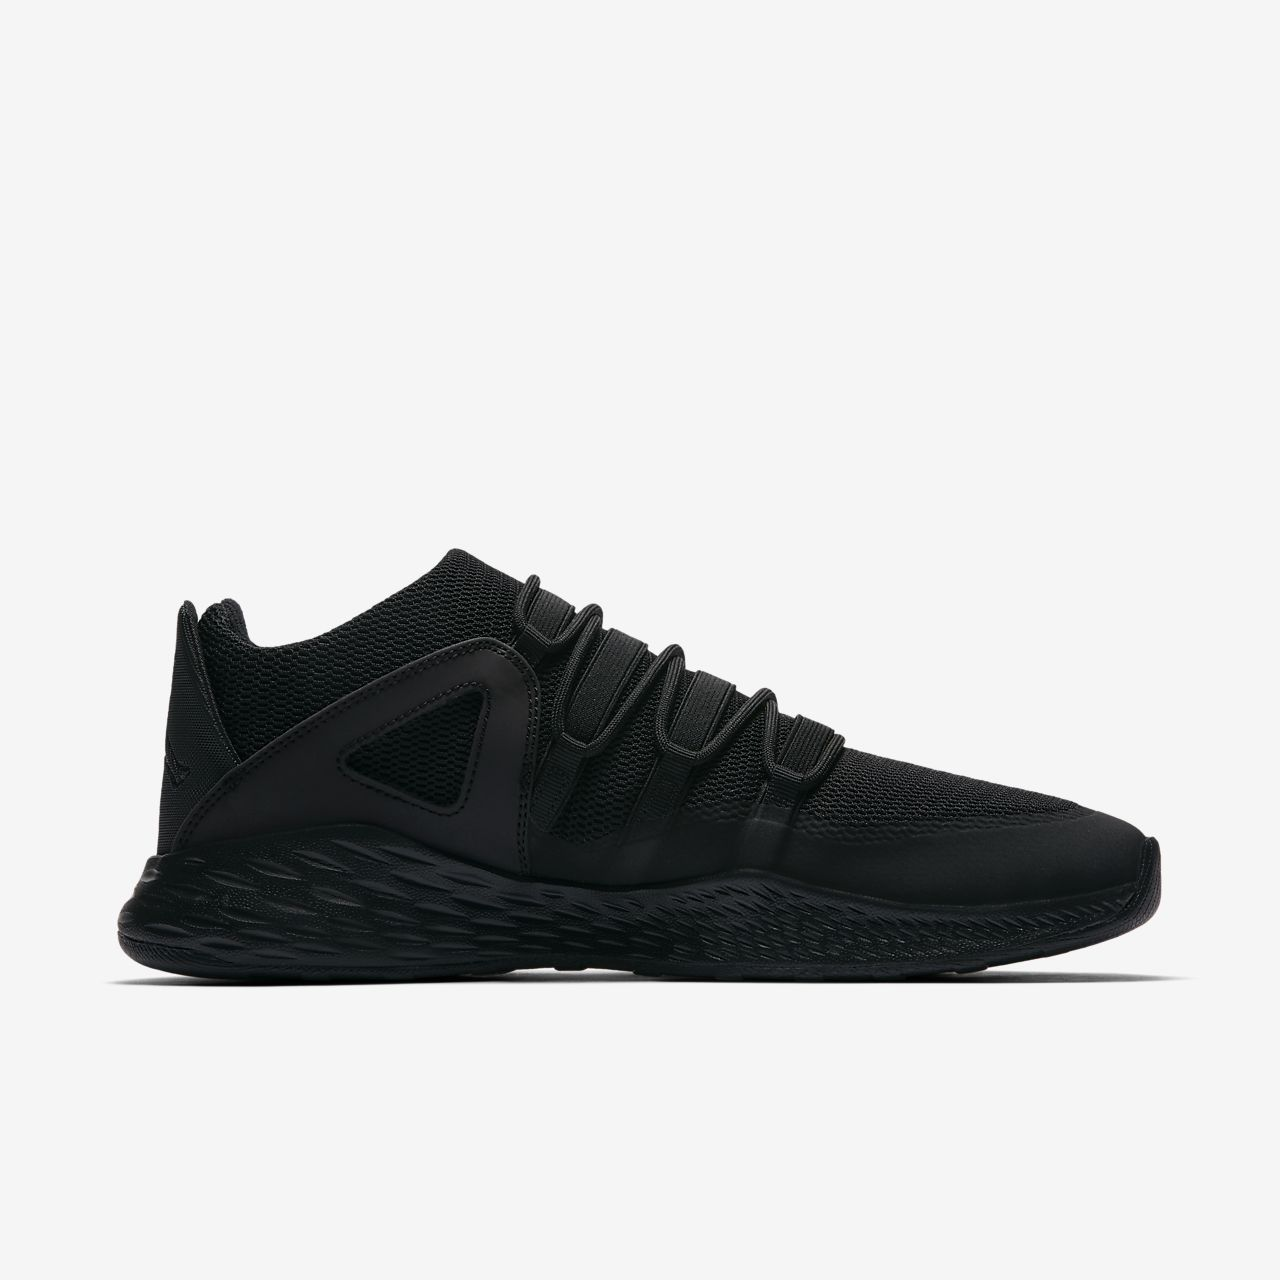 jordan formula 23 low men s shoe